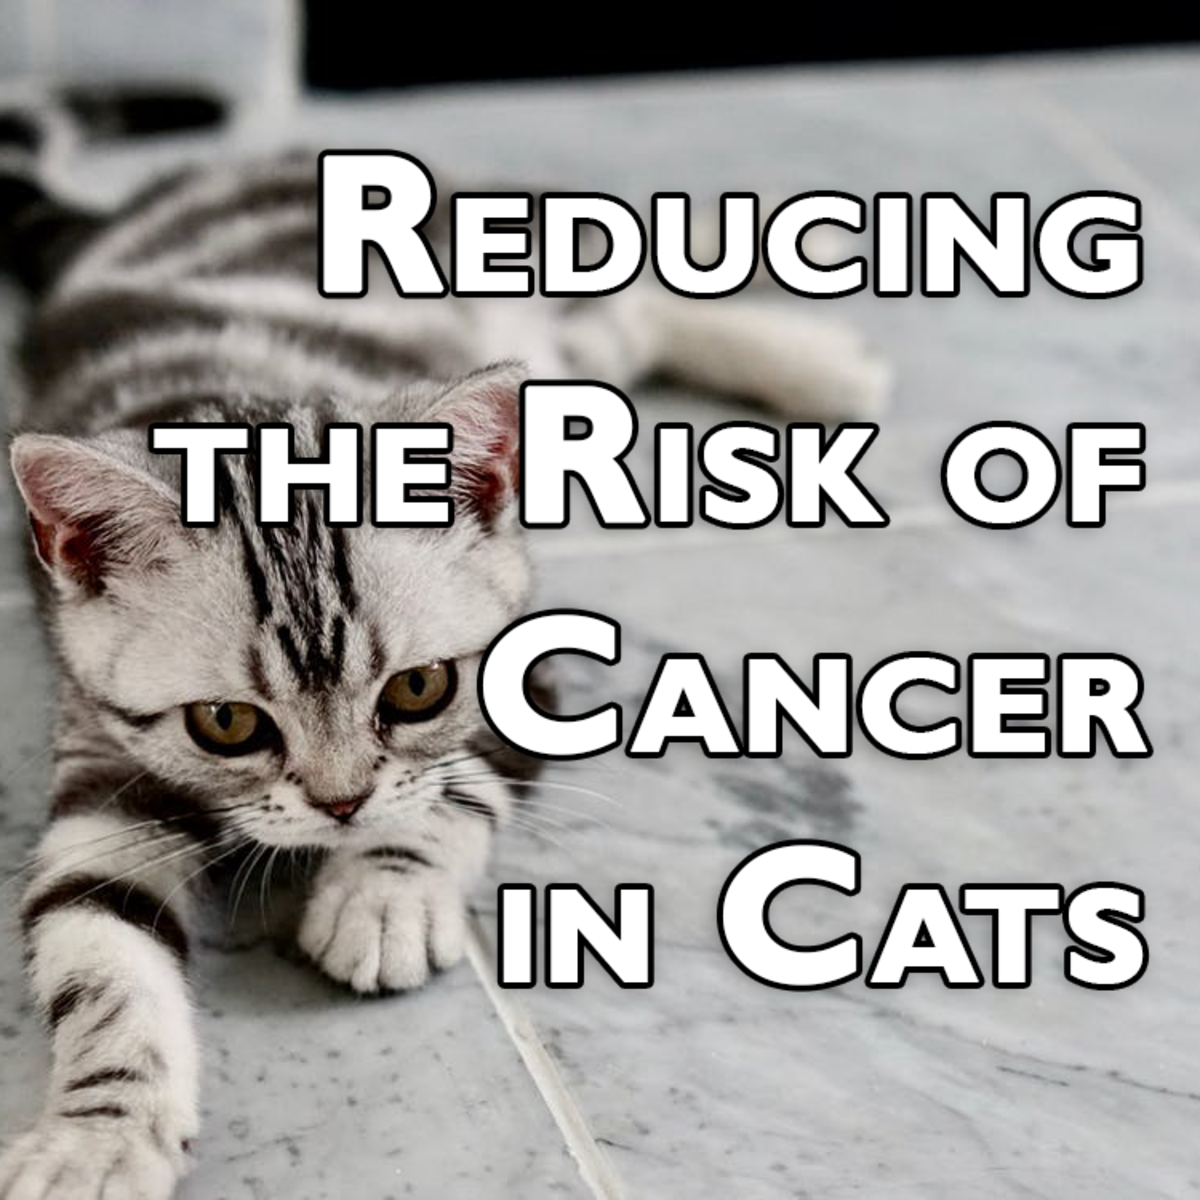 Reducing the Risk of Cancer in Cats: How to Prevent Cancer in Your Feline Friend